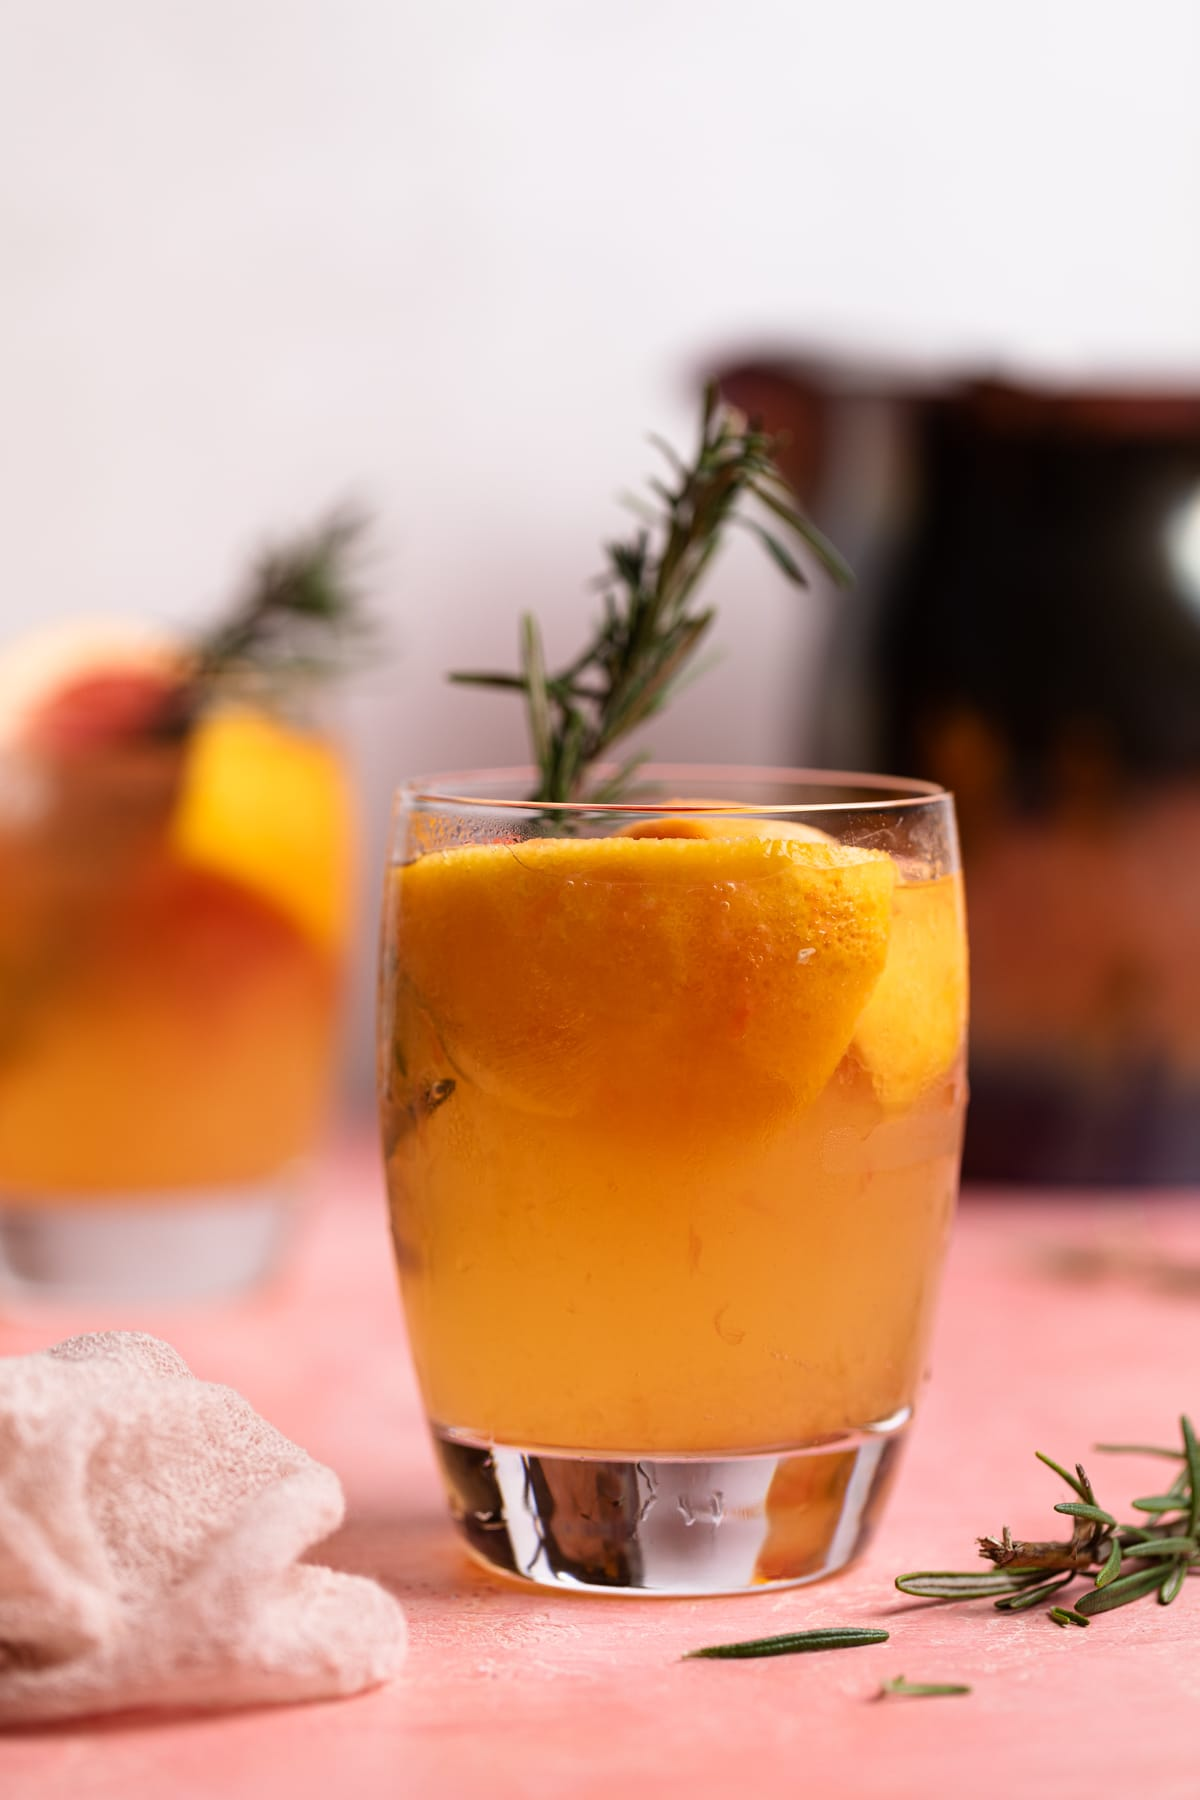 Grapefruit Apple Cider Vinegar drink with fresh rosemary in a glass